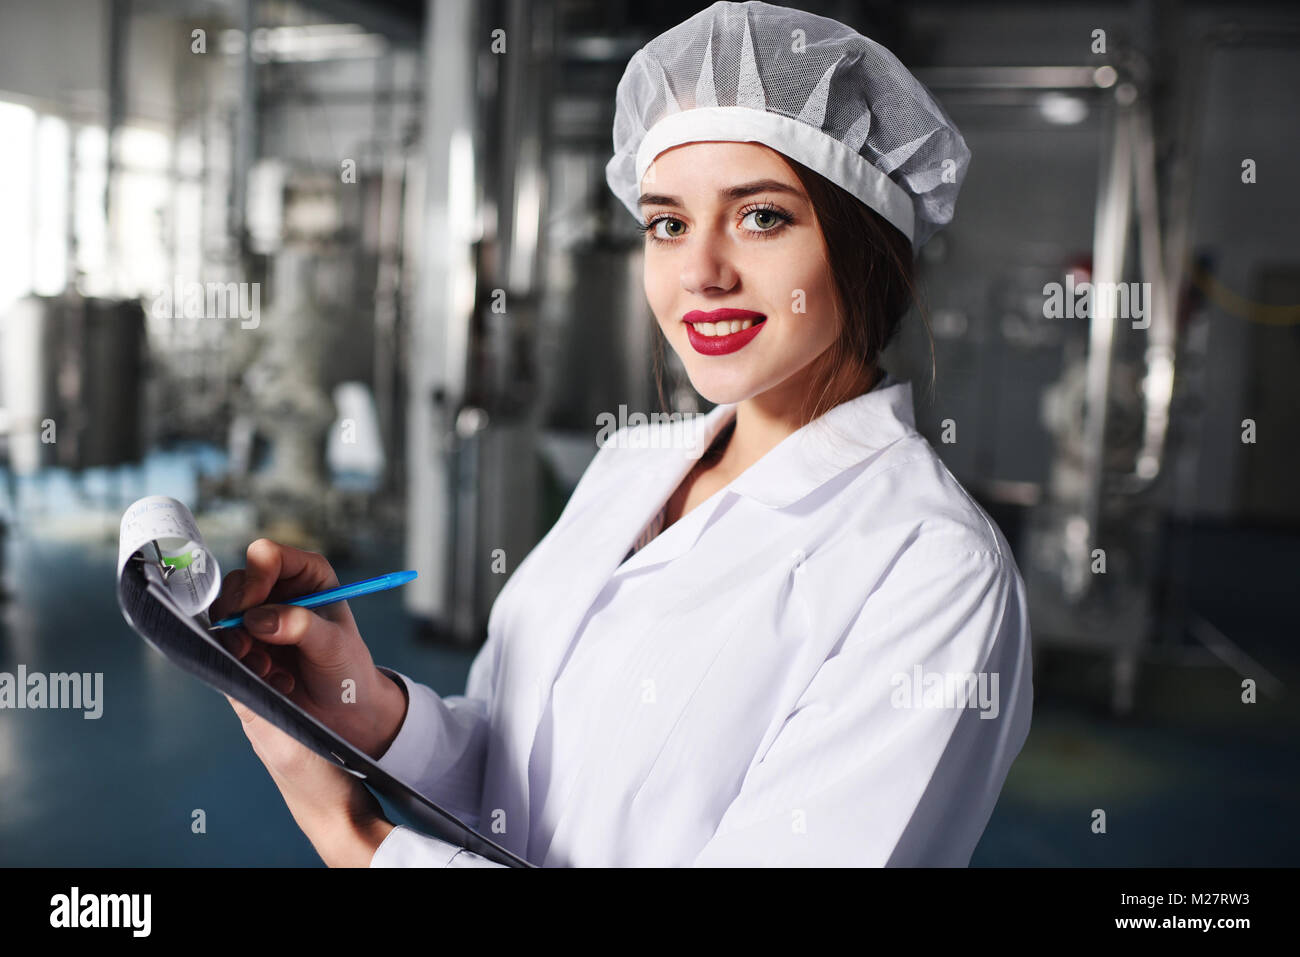 a pretty young girl scientist or worker in white uniform makes notes on paper against the background of modern factory - Stock Image